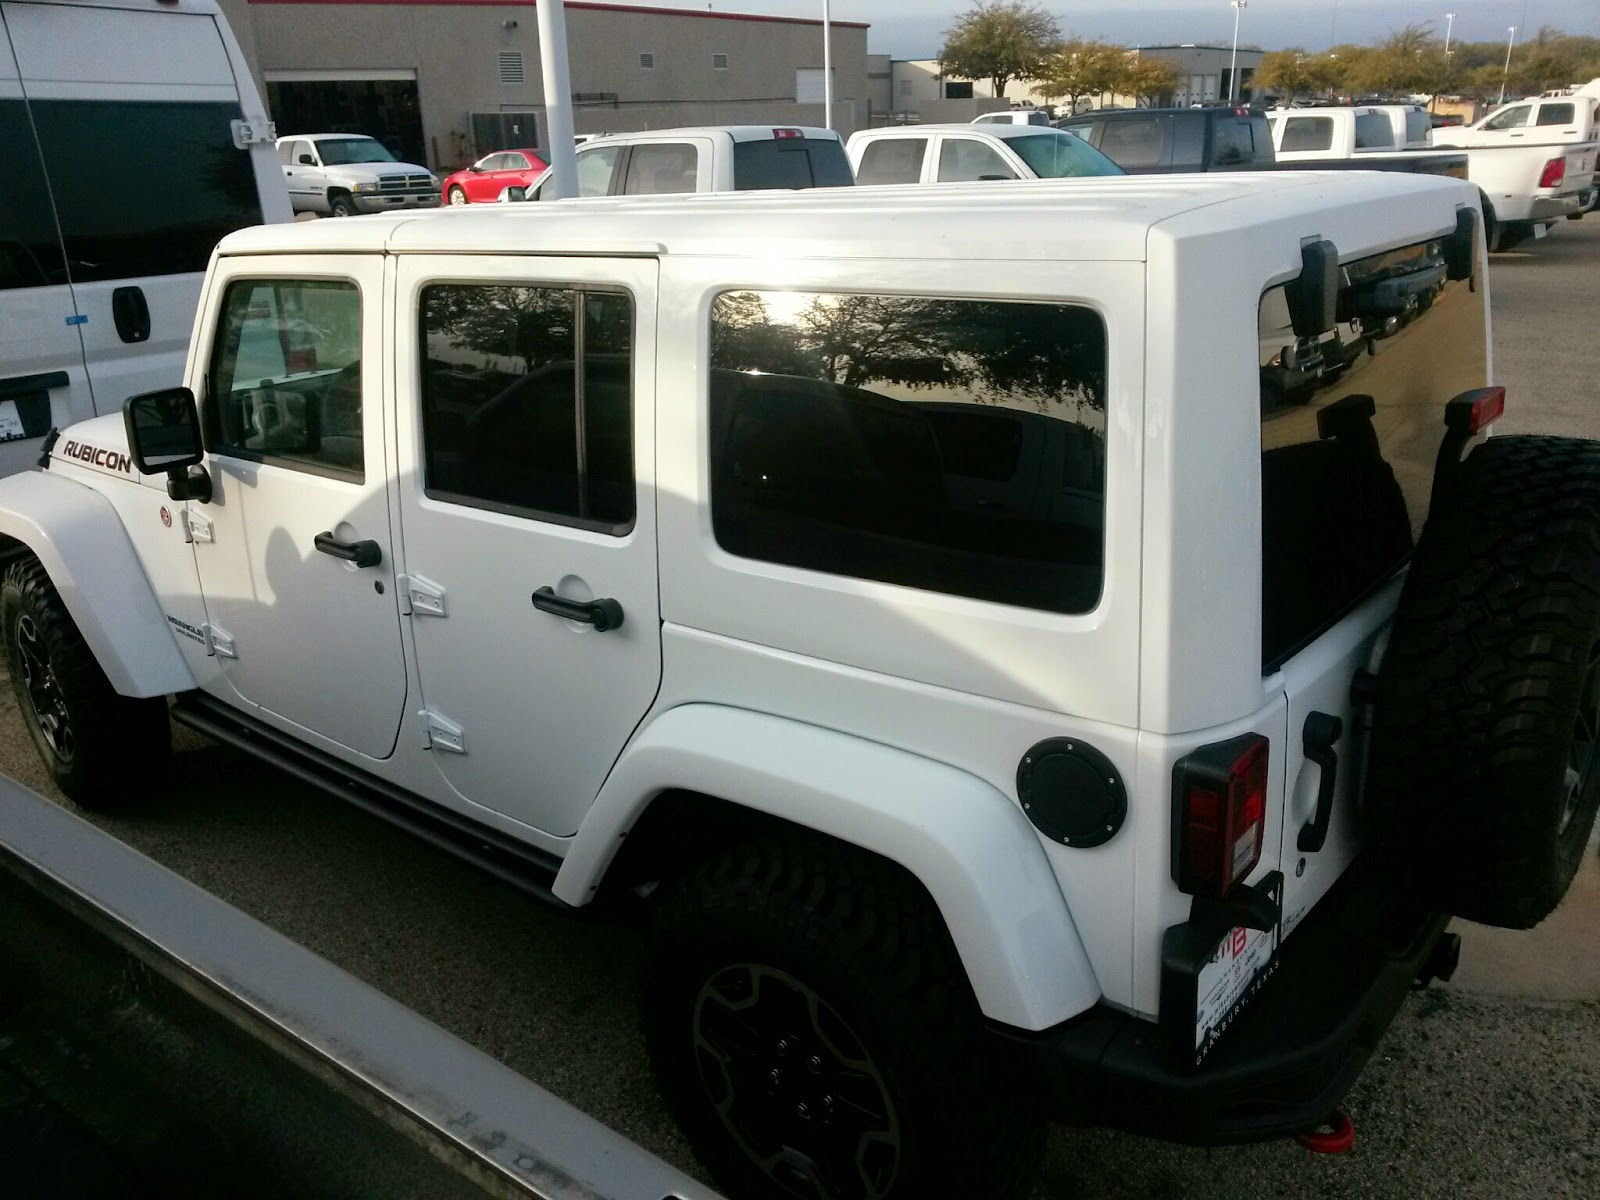 tdy s 817-243-9840 — new 2015 jeep wrangler unlimited rubicon